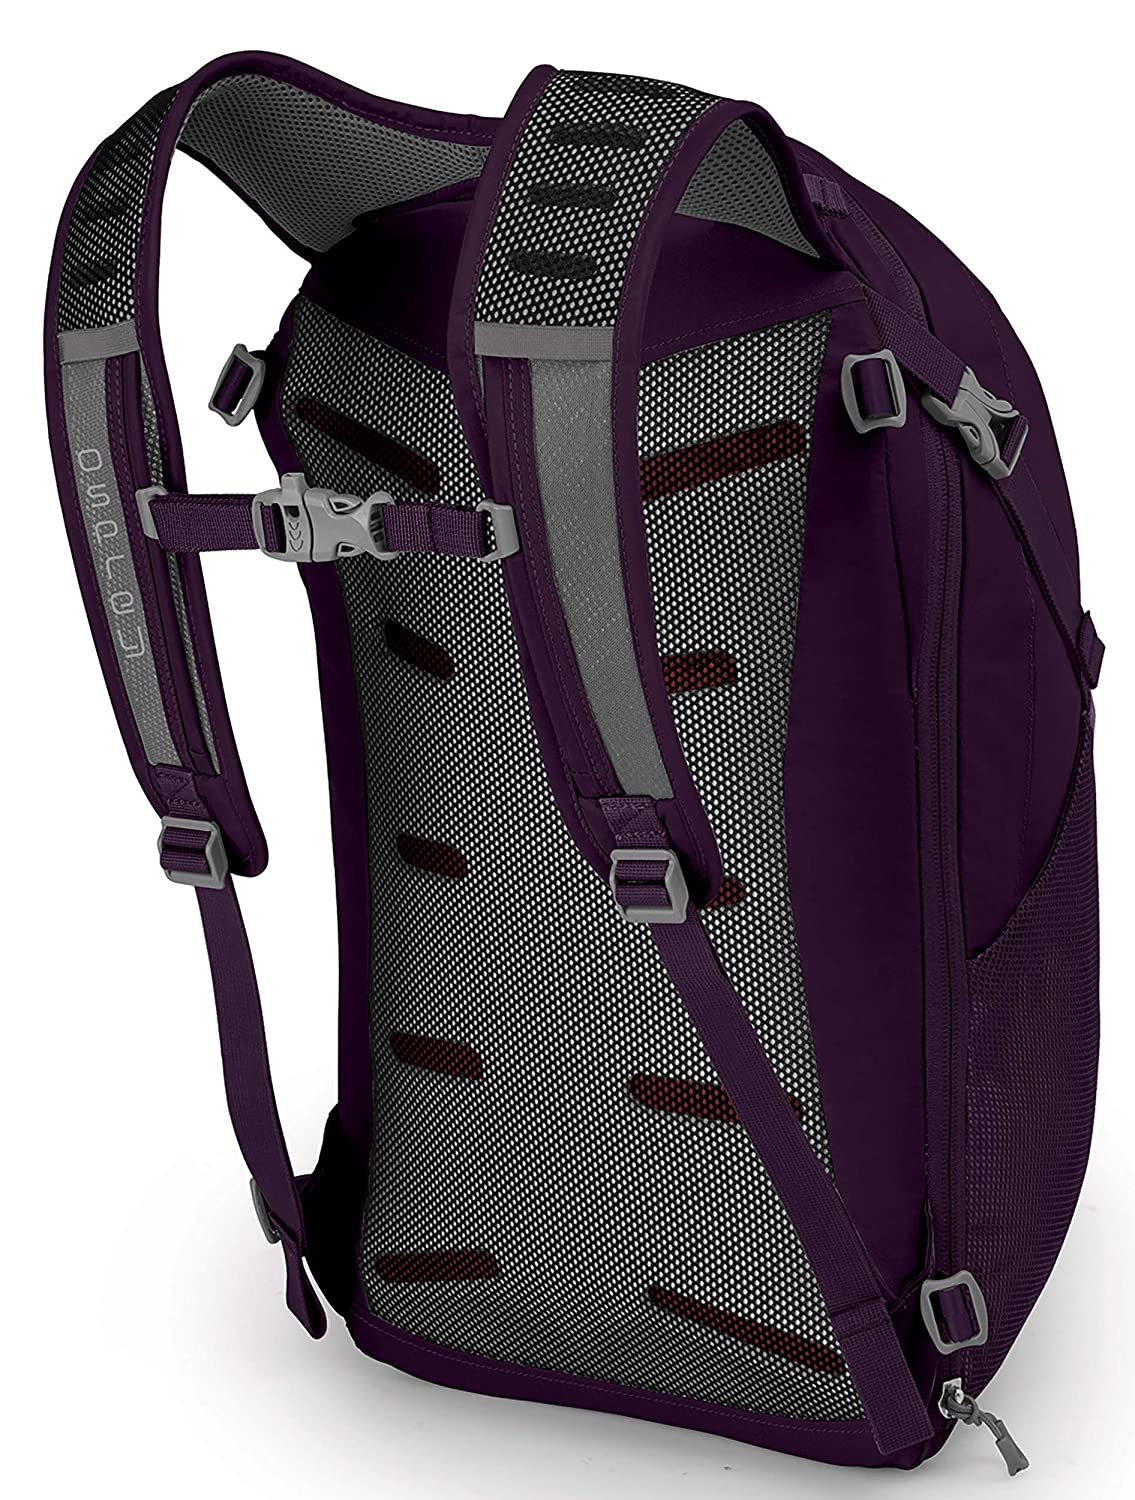 pick up classic fit brand new Osprey Packs Daylite Travel Daypack